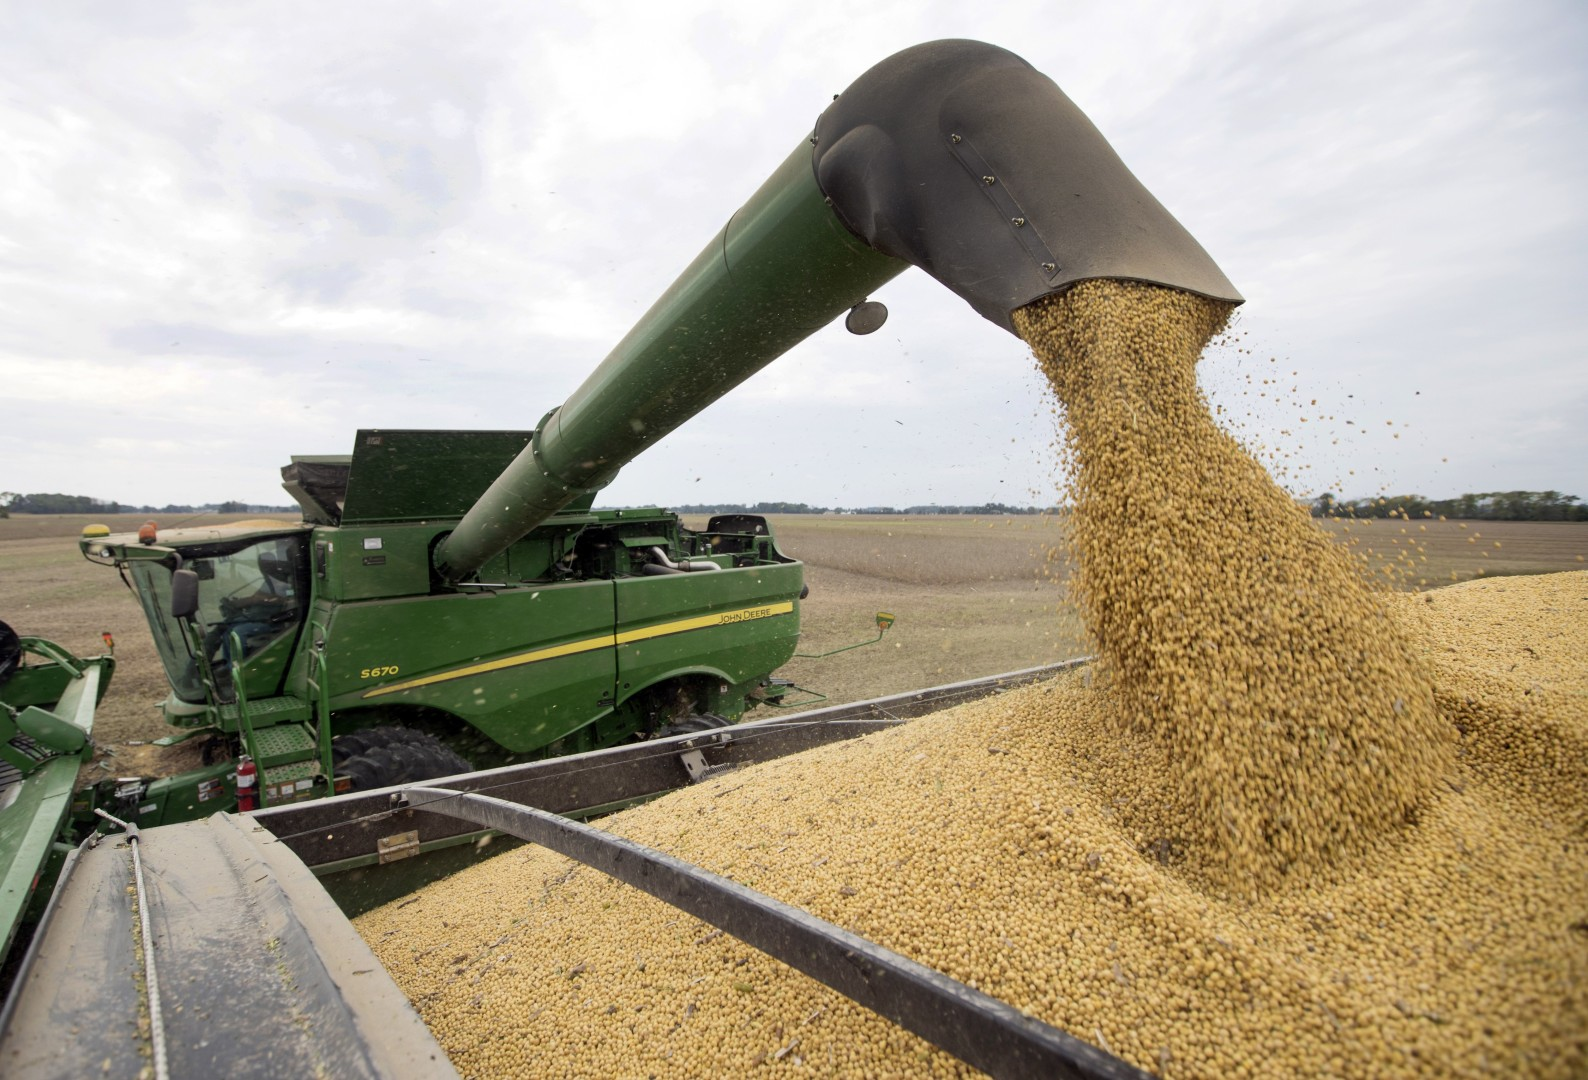 China won't buy US agricultural products if Americans 'flip-flop' in